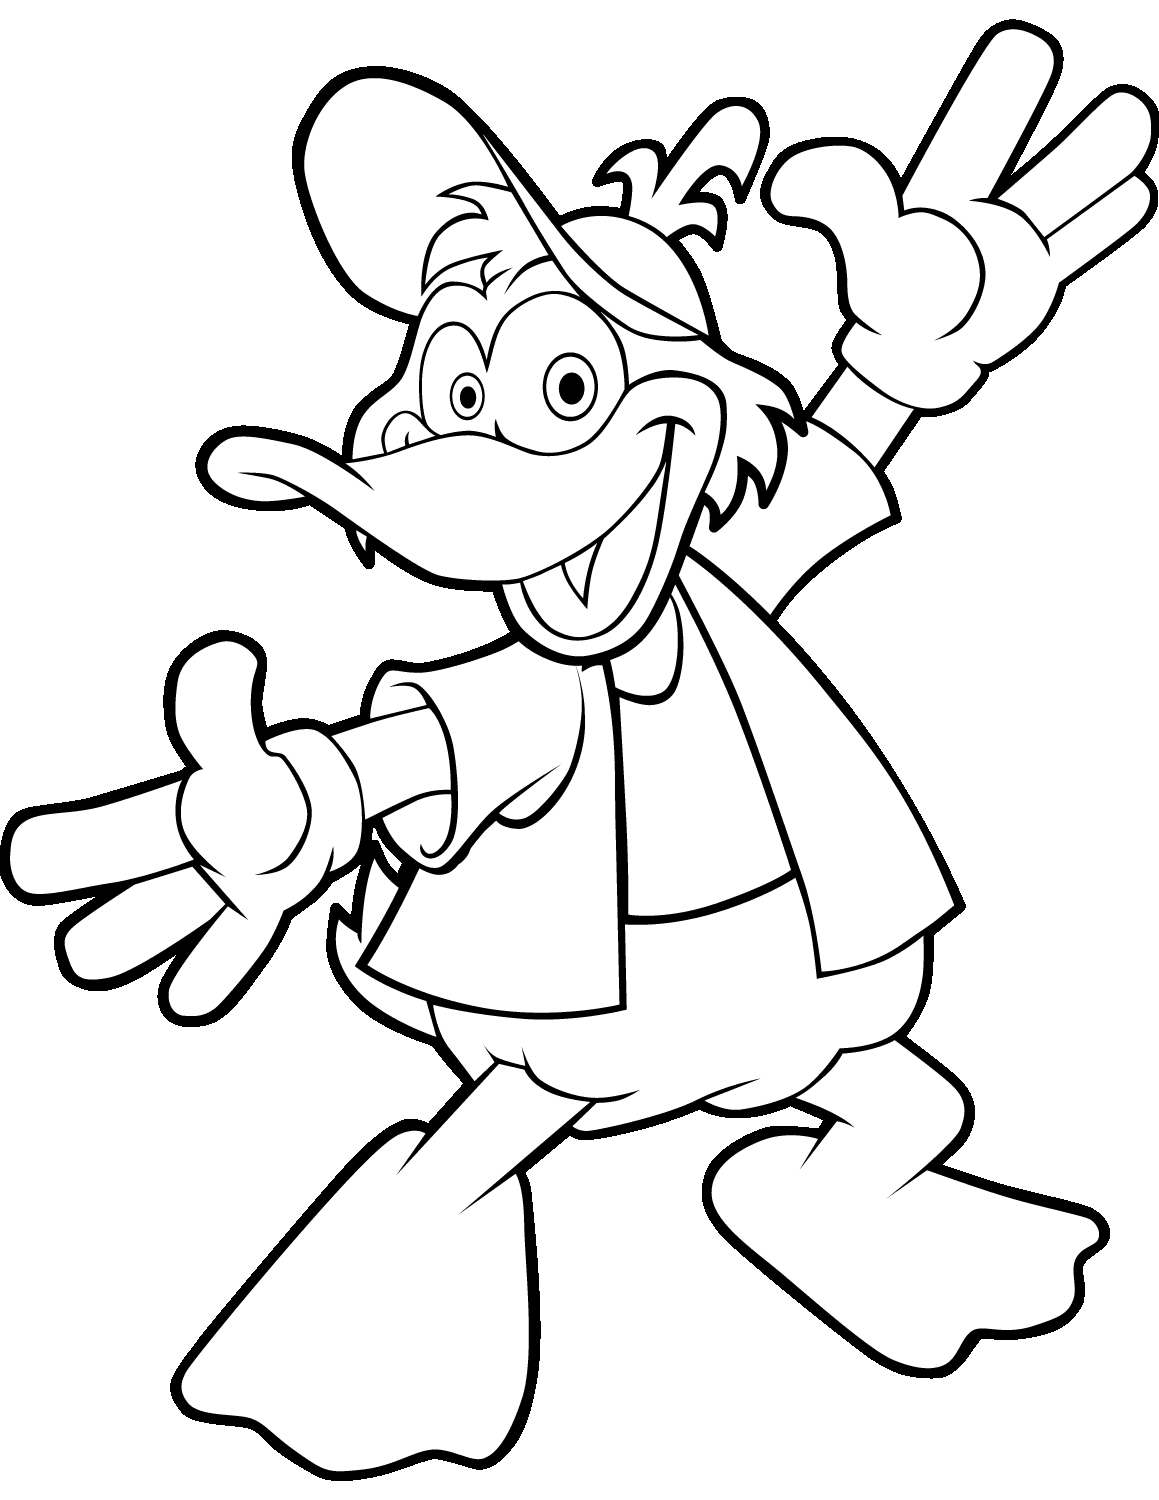 Funny cartoon duck wears a cap Coloring Pages